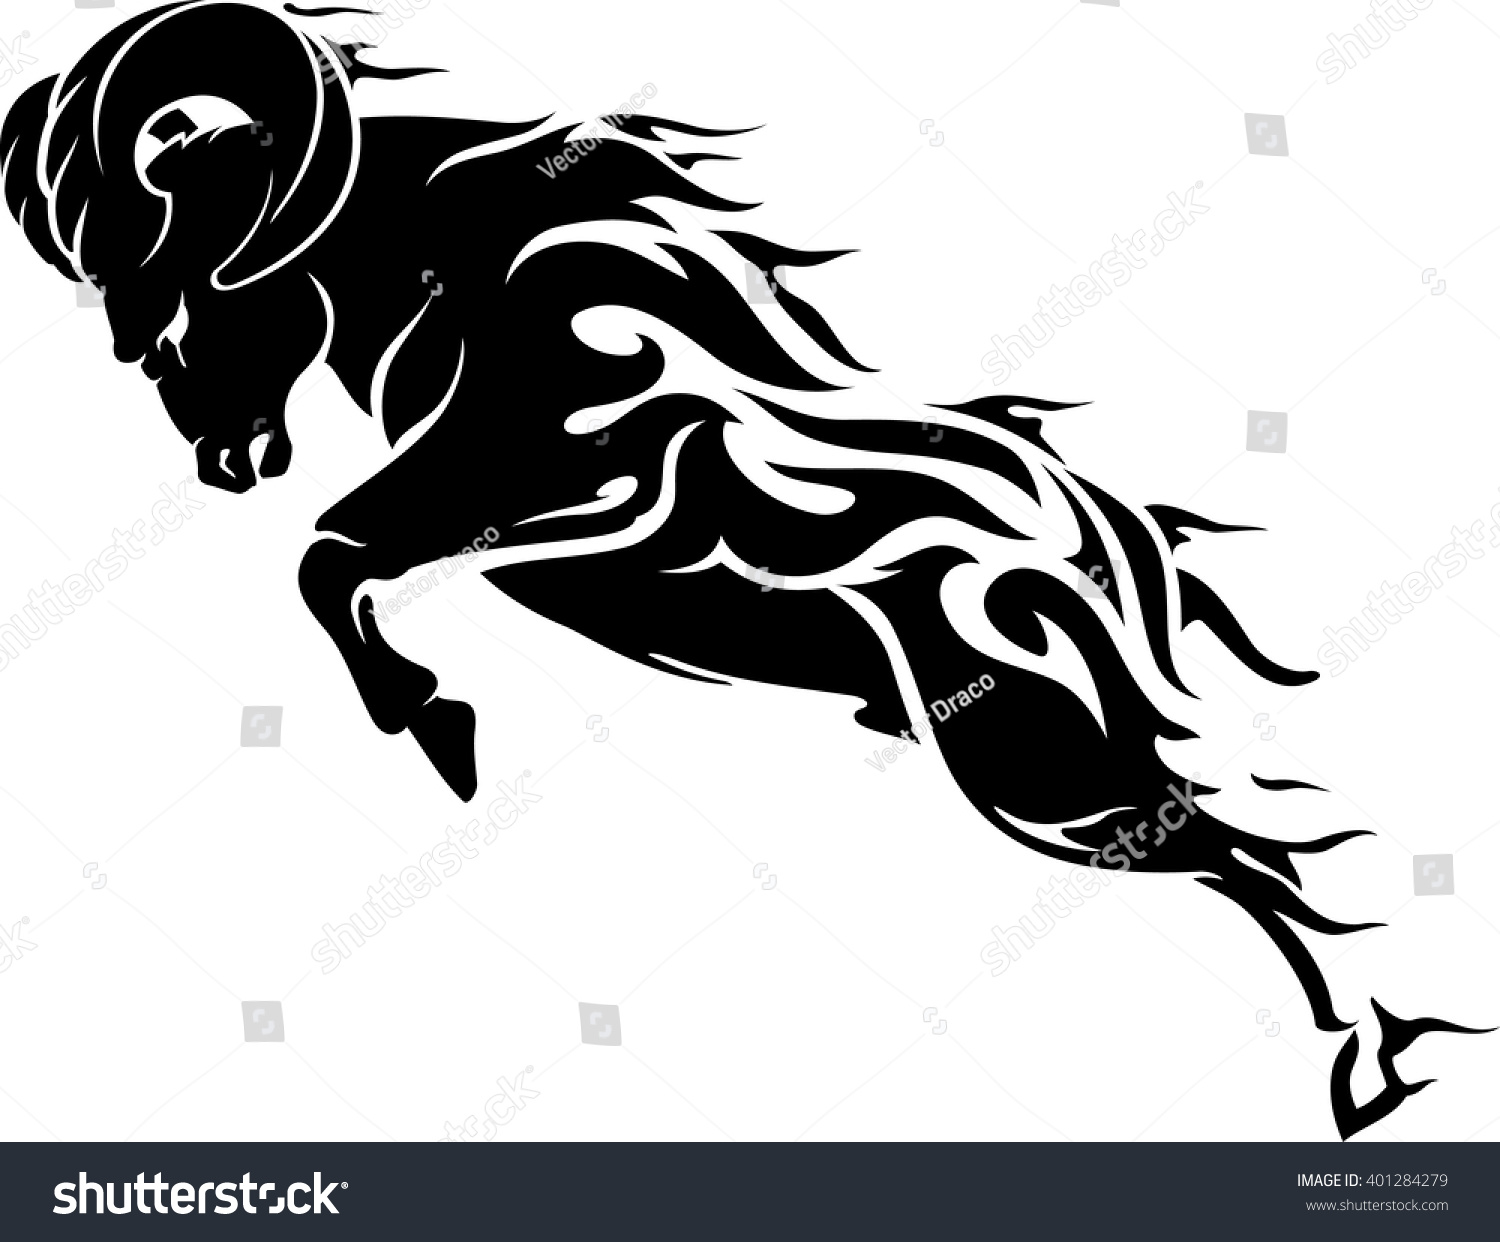 Aries Fire Element Ram Symbol Stock Vector Royalty Free 401284279